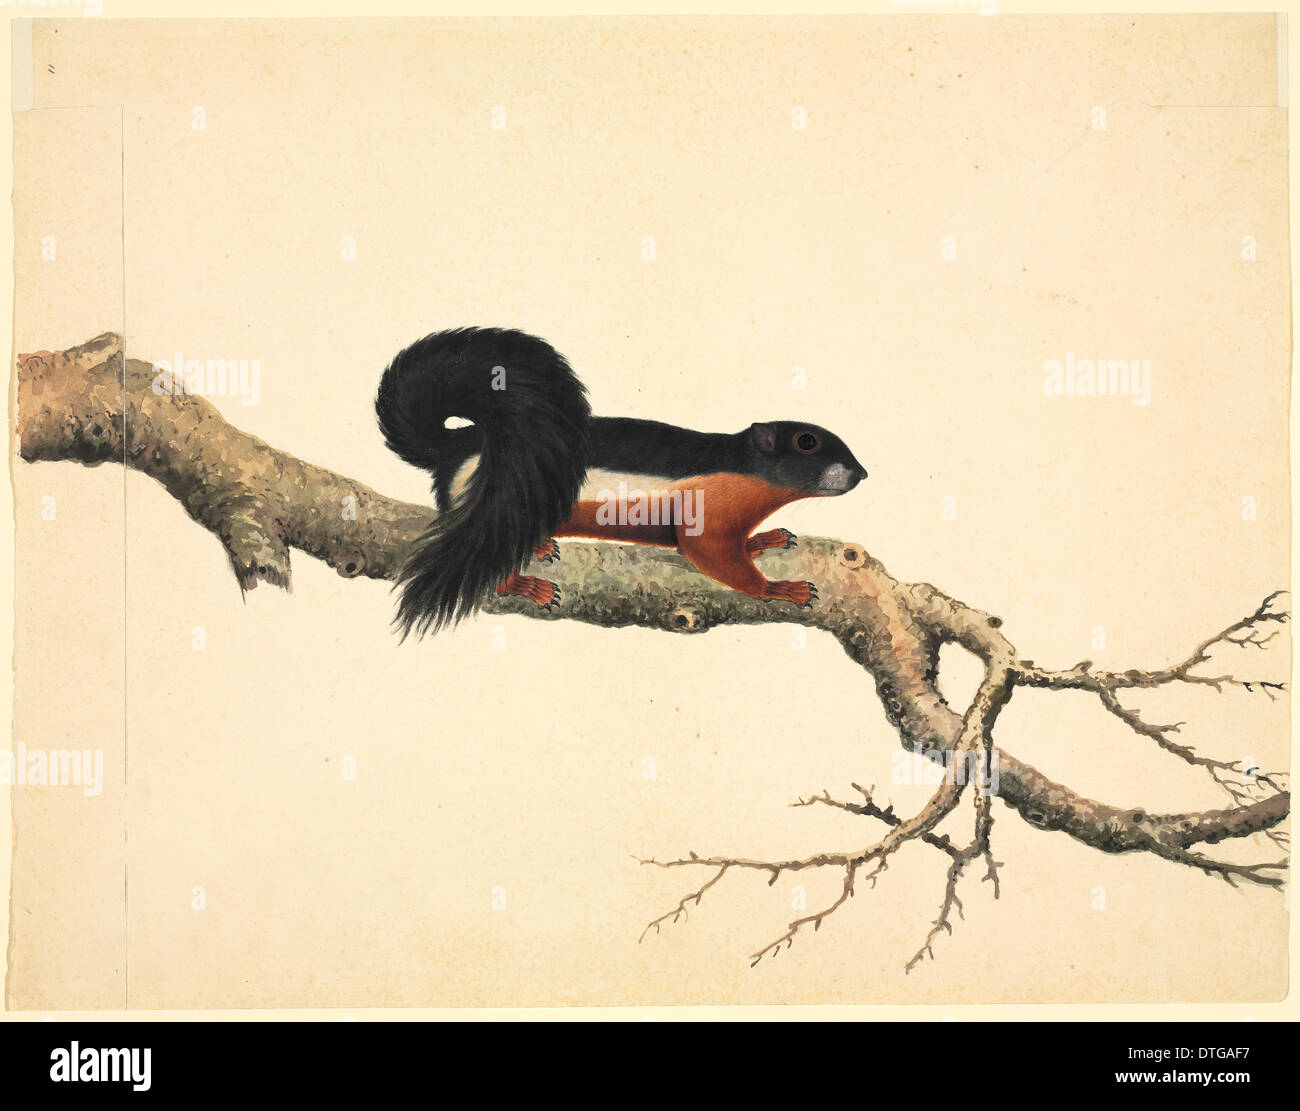 Plate 79 of the Reeves Collection (Zoology) - Stock Image